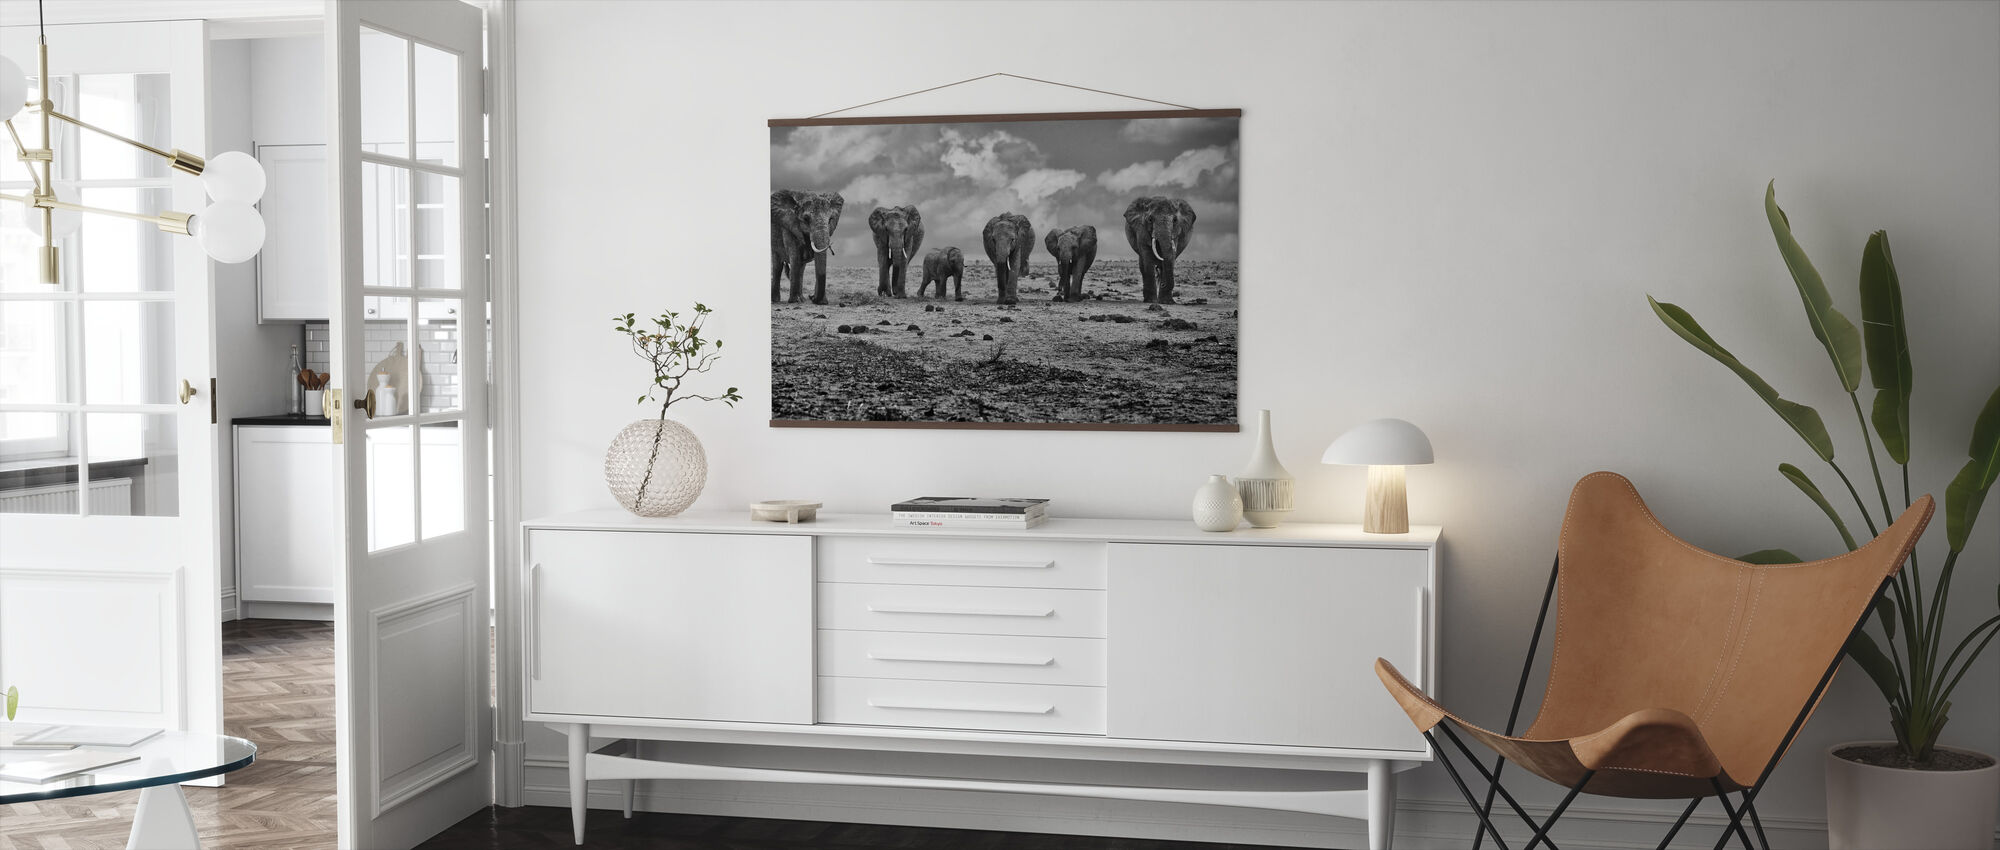 Grote Familie - Poster - Woonkamer